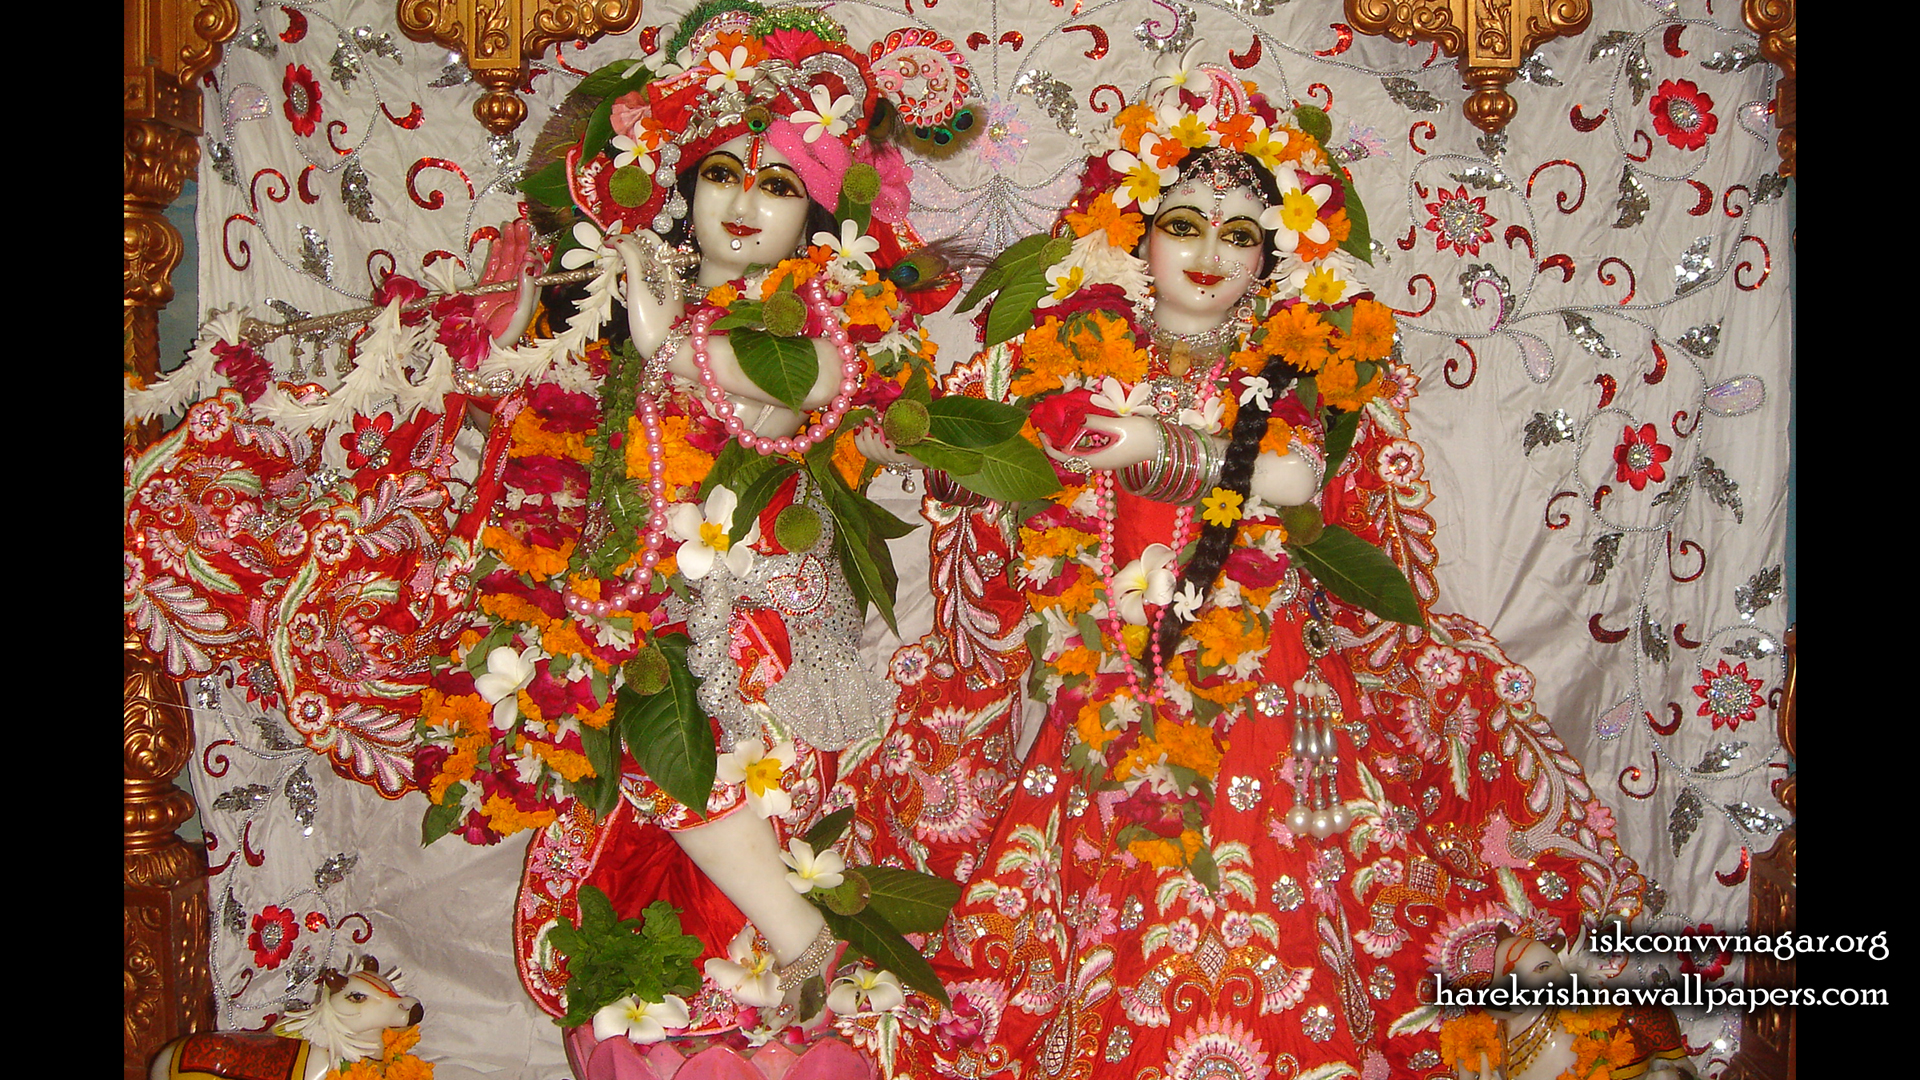 Sri Sri Radha Giridhari Wallpaper (031) Size 1920x1080 Download